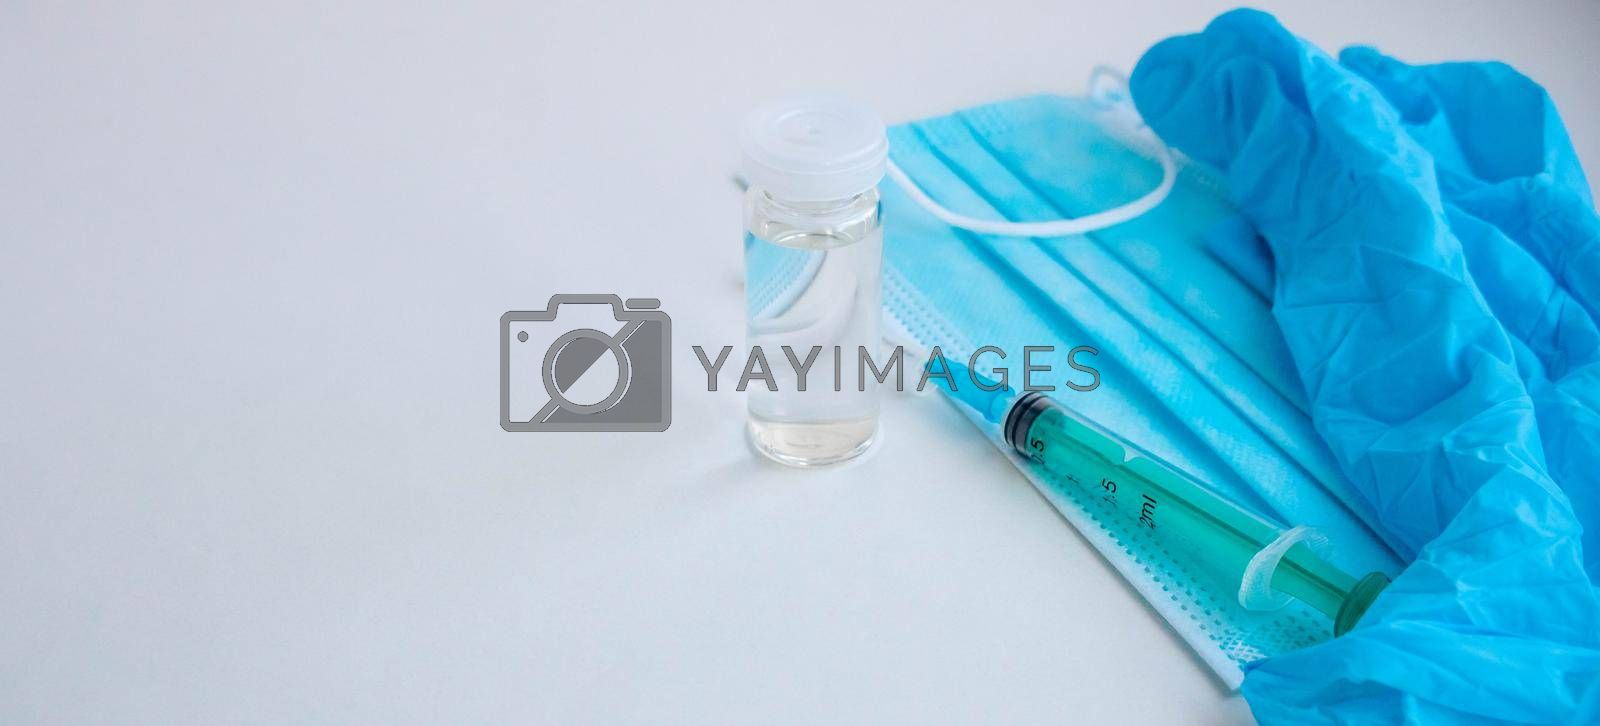 A syringe, gloves, mask, and a bottle of vaccine stand on a blue background. For the prevention, immunization and treatment of coronavirus infection. The concept of medicine and health care.